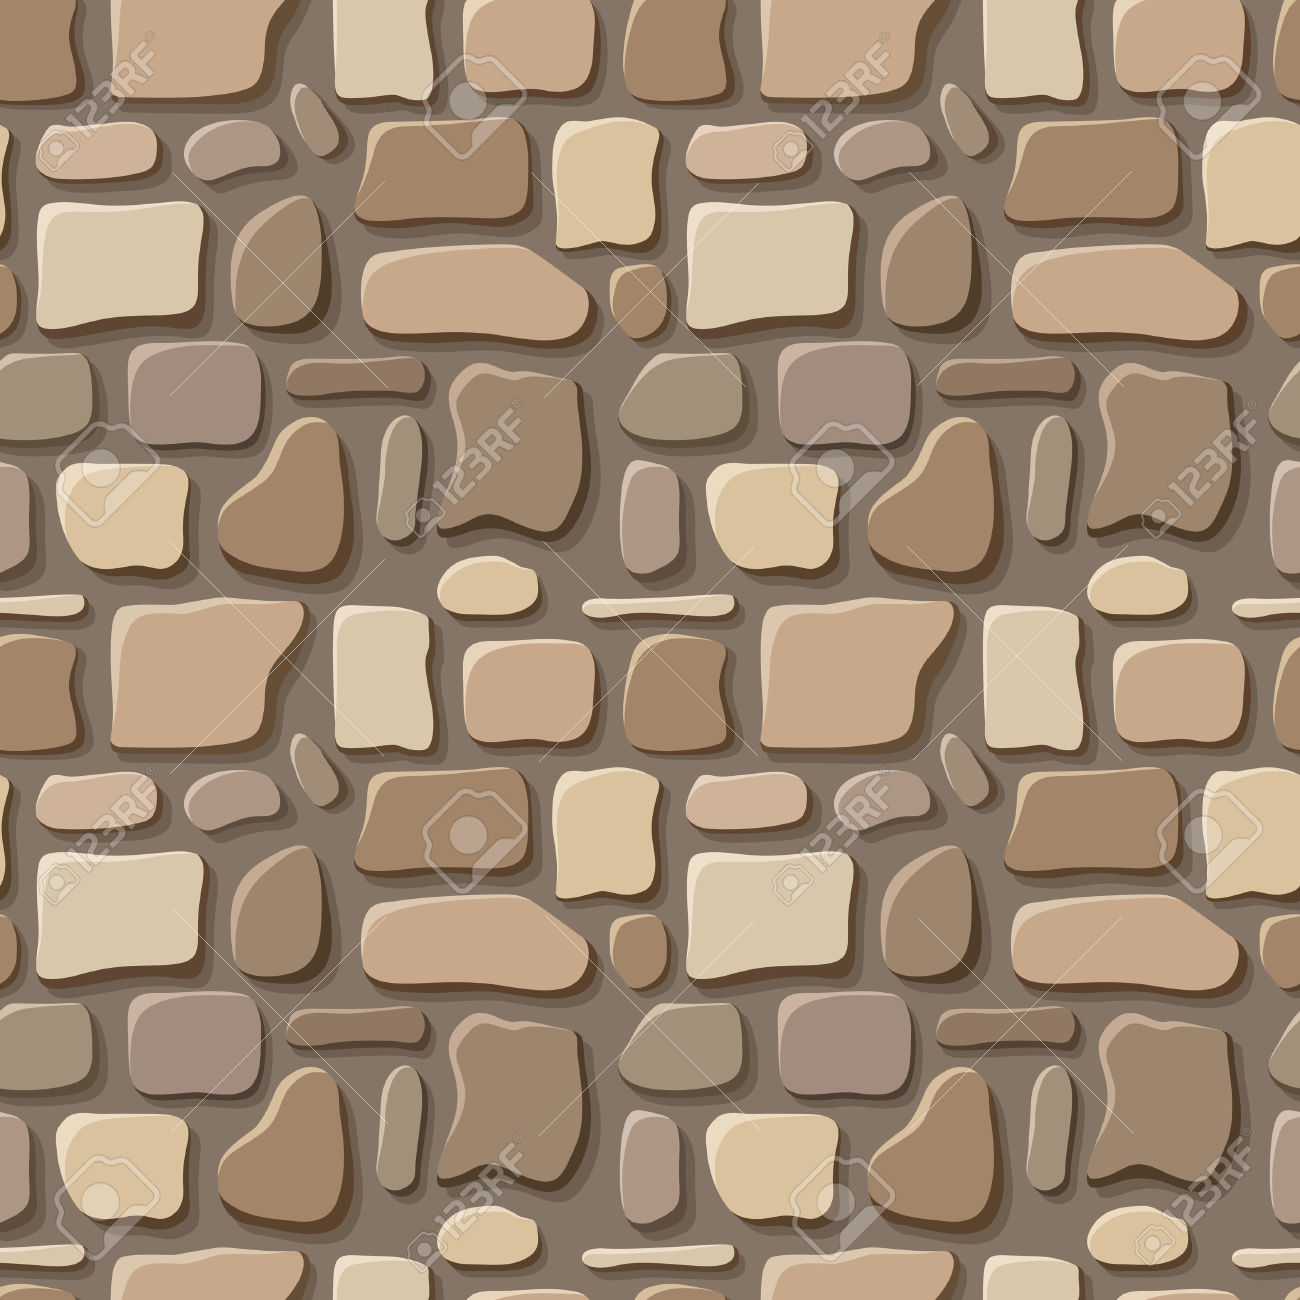 stone wall texture clipart clipground stone wall clipart black and white dry stone wall clipart